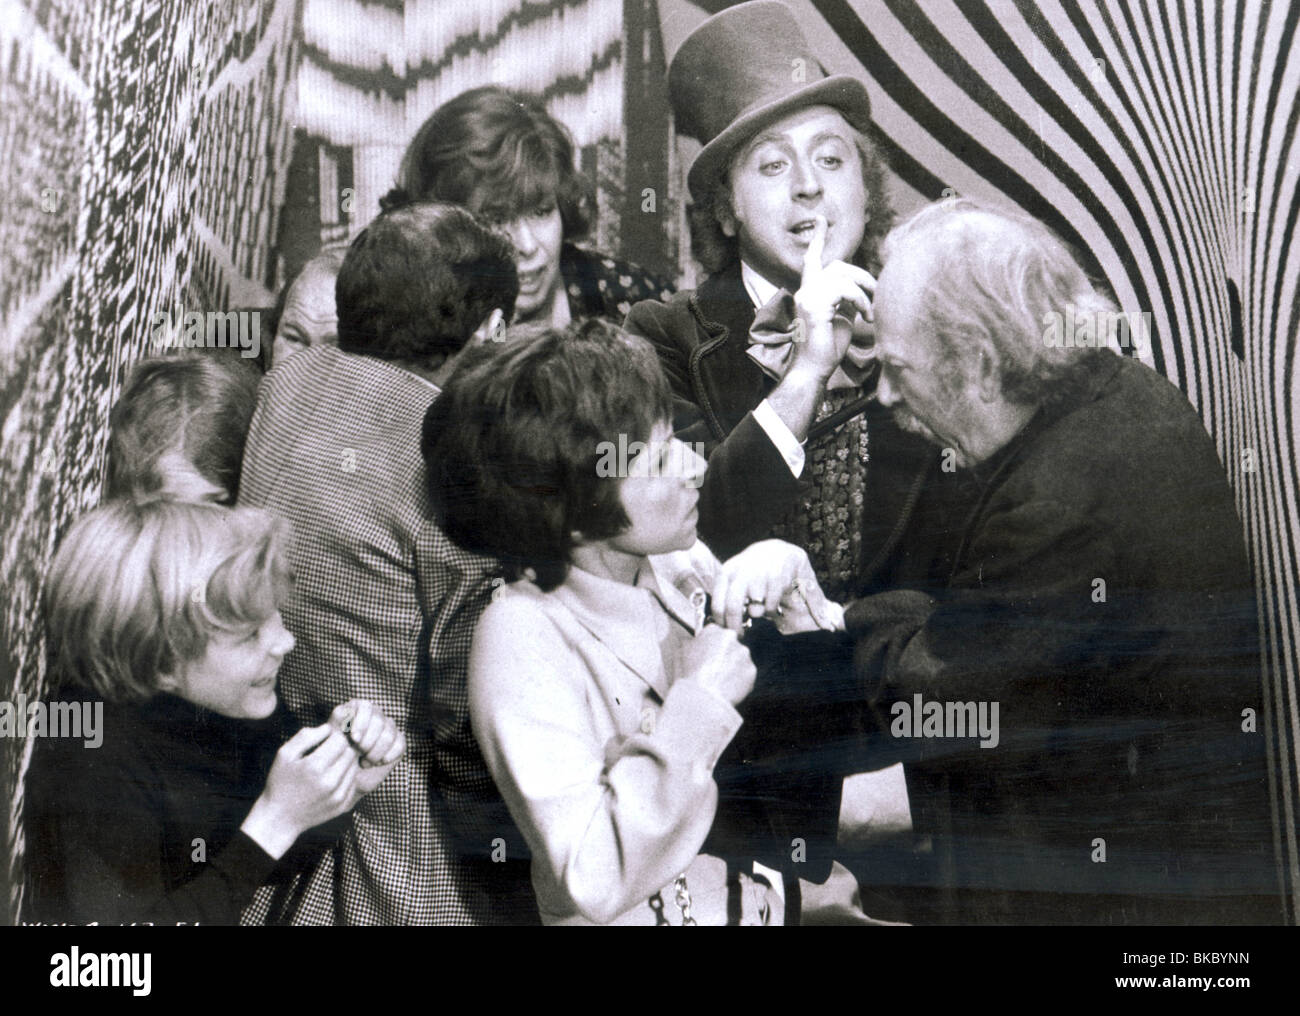 WILLY WONKA AND THE CHOCOLATE FACTORY (1971) PETER OSTRUM, JULIE ...